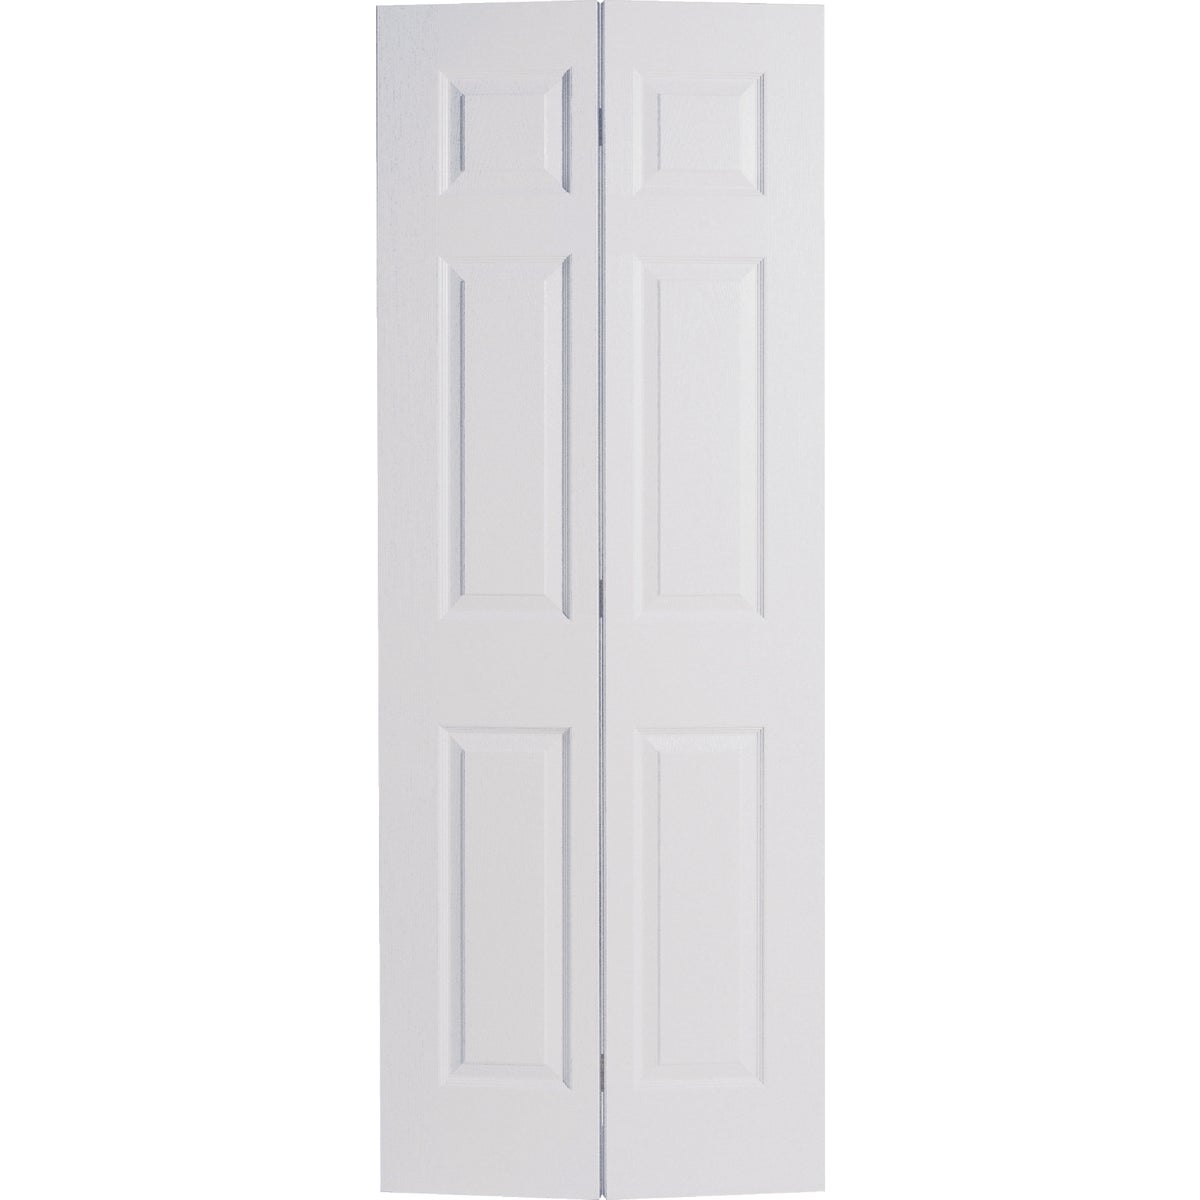 6/0 1-3/8 6PN TX BF DOOR -  by Masonite